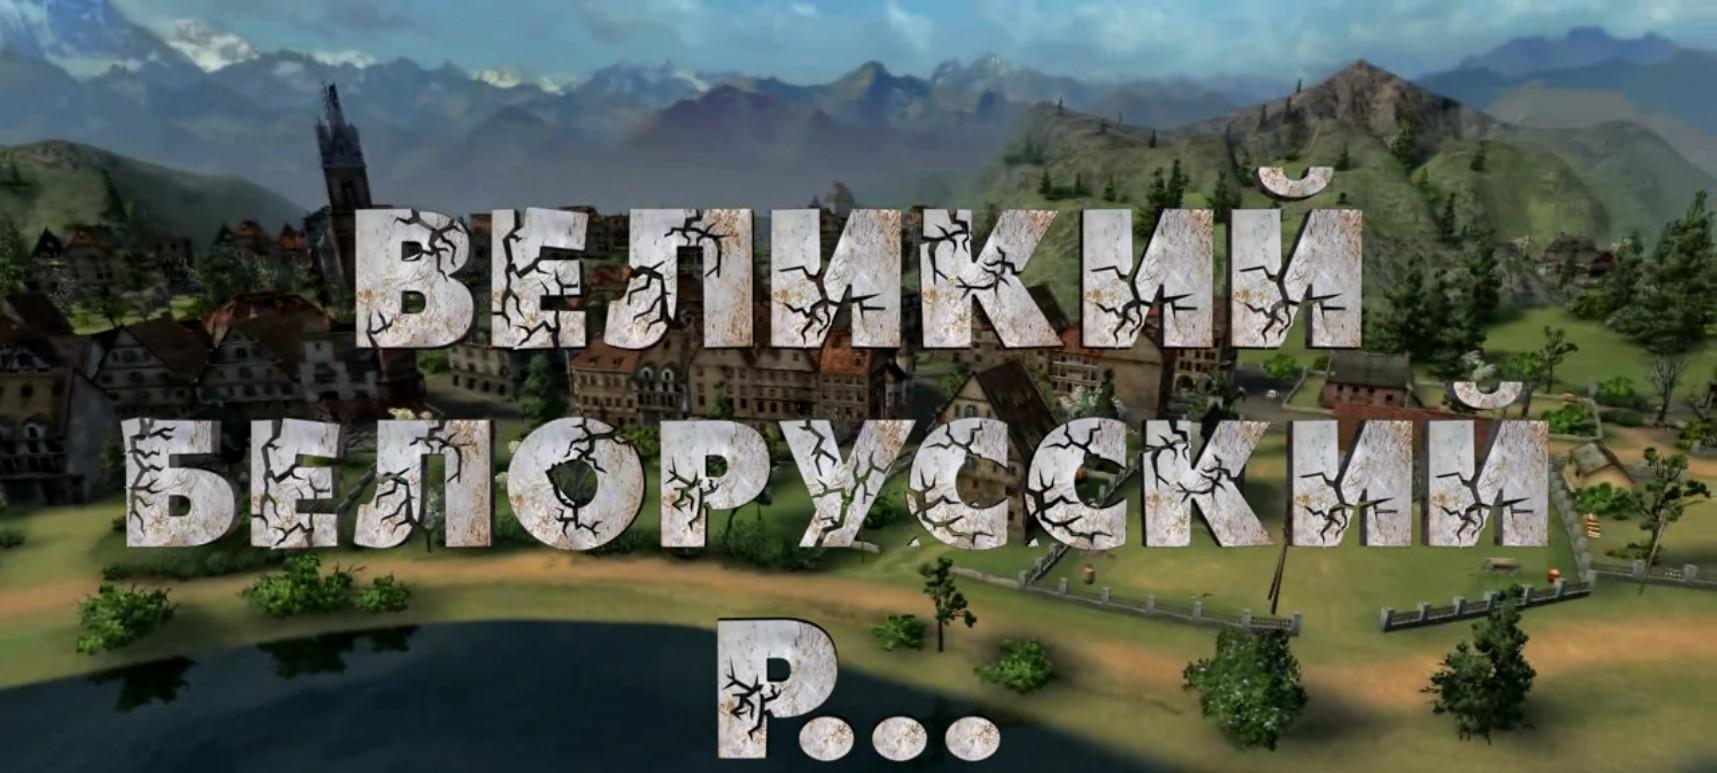 ВБР World of Tanks что это?